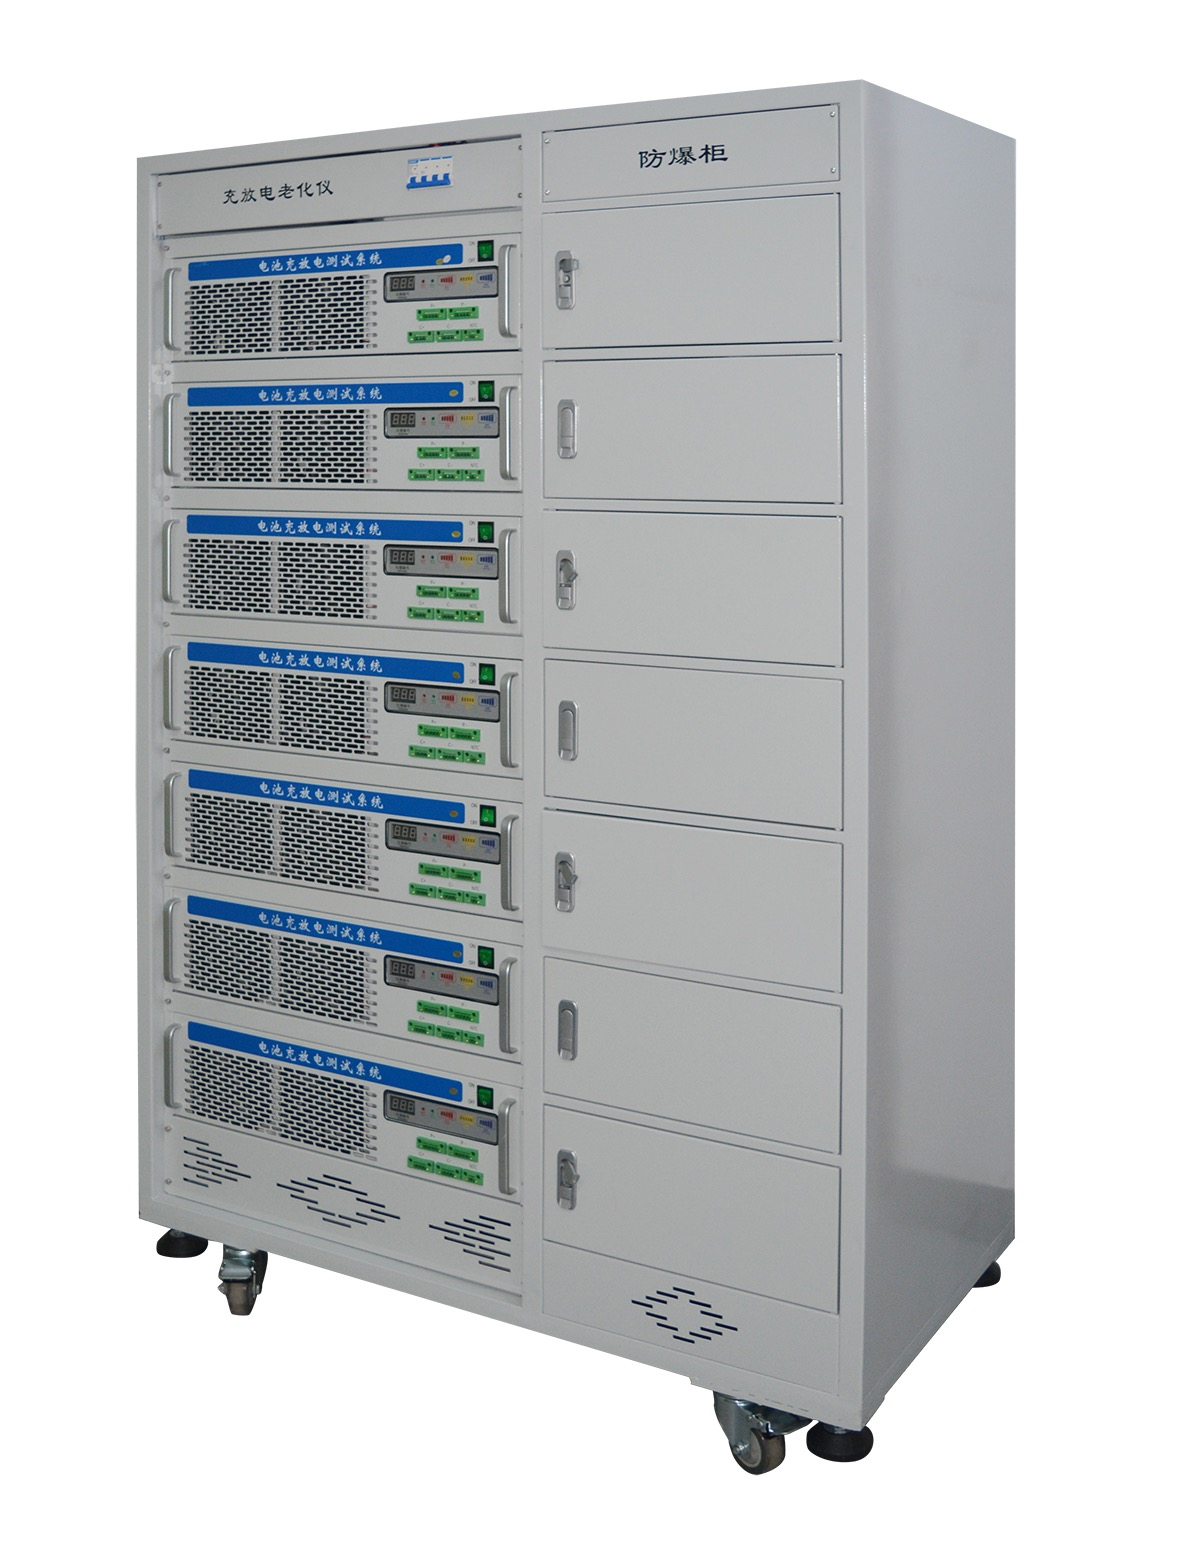 What are the performance advantages of constant temperature aging cabinet?